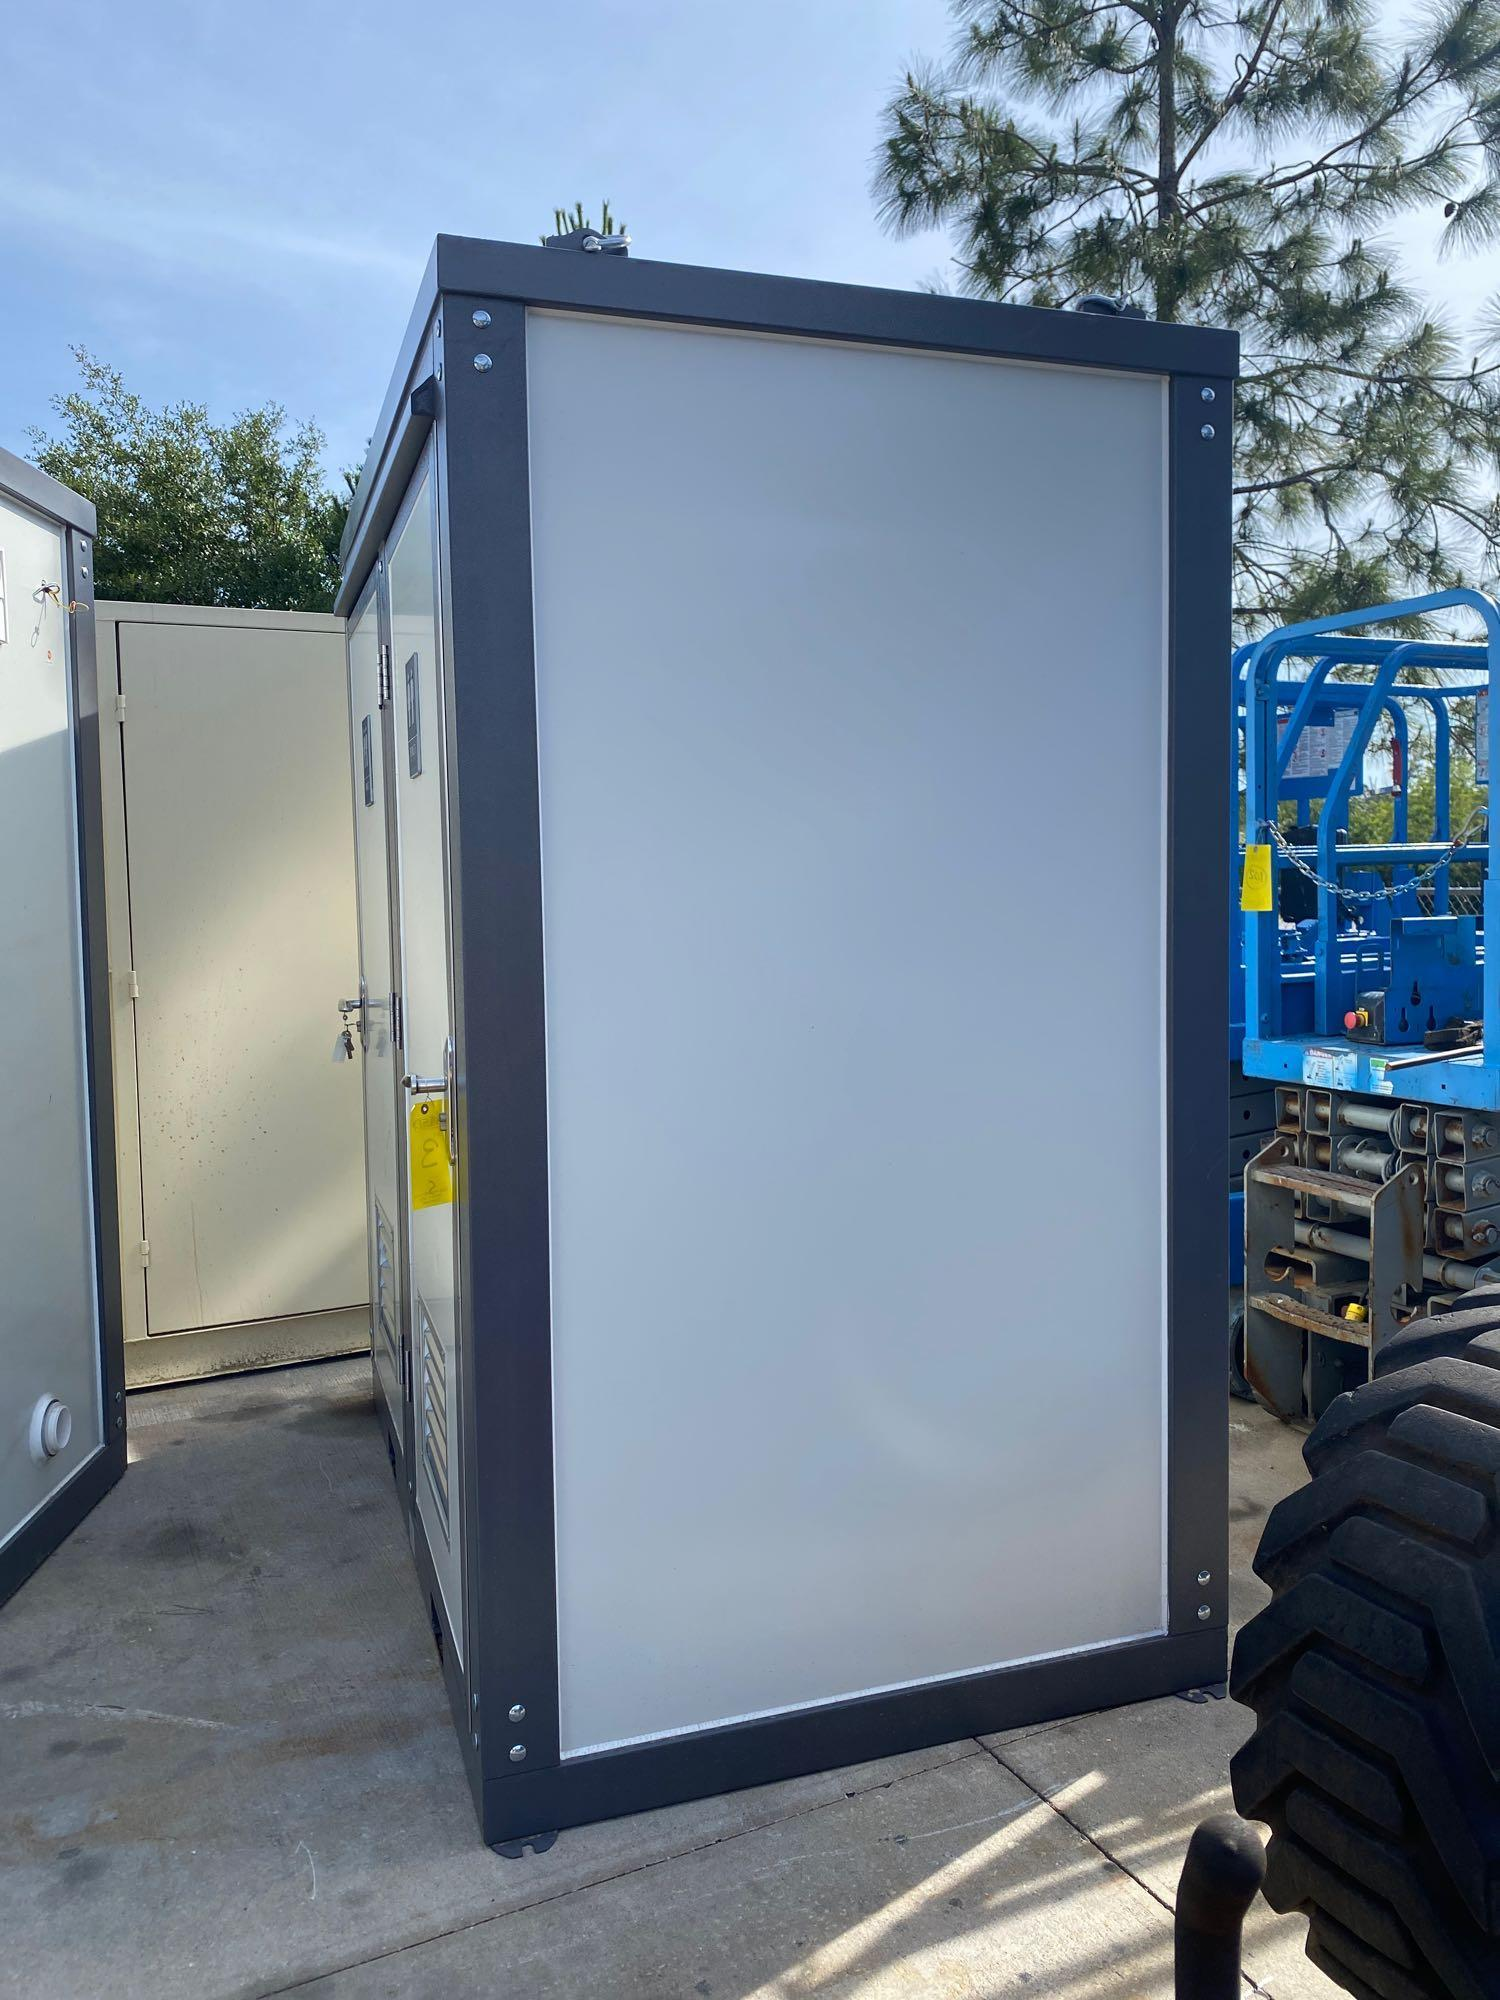 """NEW/UNUSED PORTABLE BATHROOM UNIT, TWO STALLS, PLUMBING AND ELECTRIC HOOKUP, 81"""" WIDE 90"""" TALL 51"""" D - Image 2 of 7"""